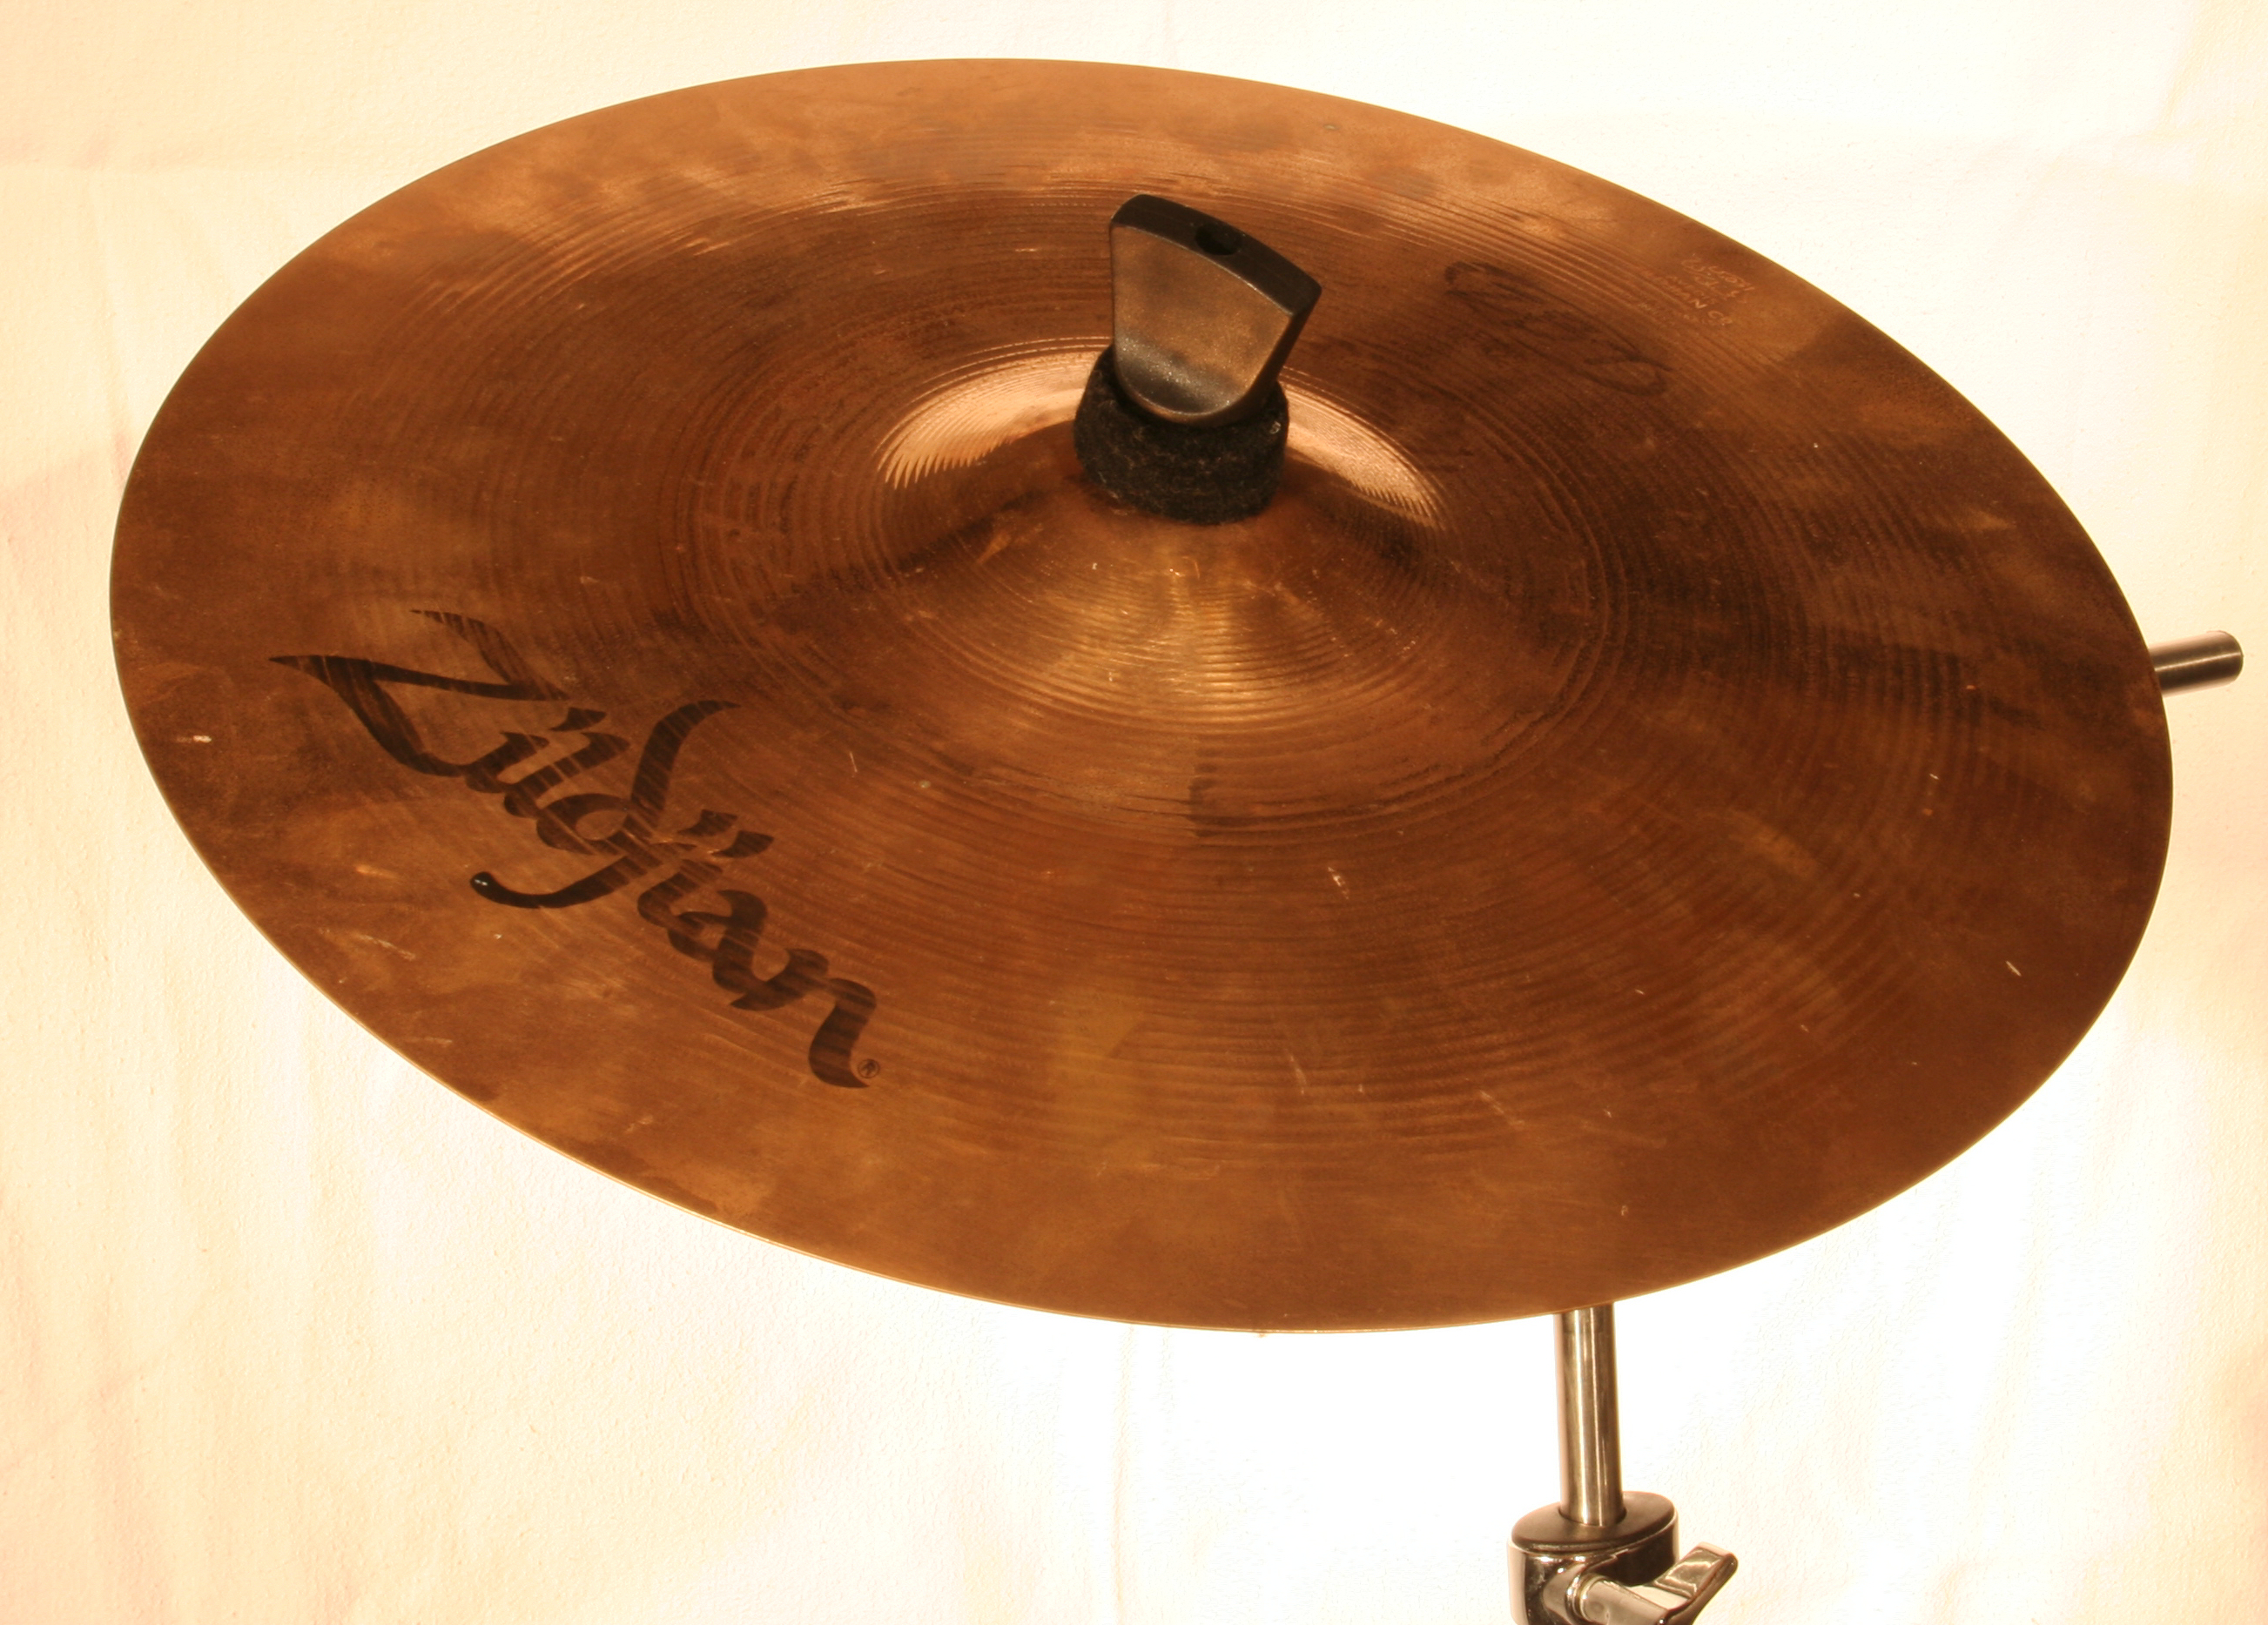 2006-07-06_Crash_Zildjian_14.jpg